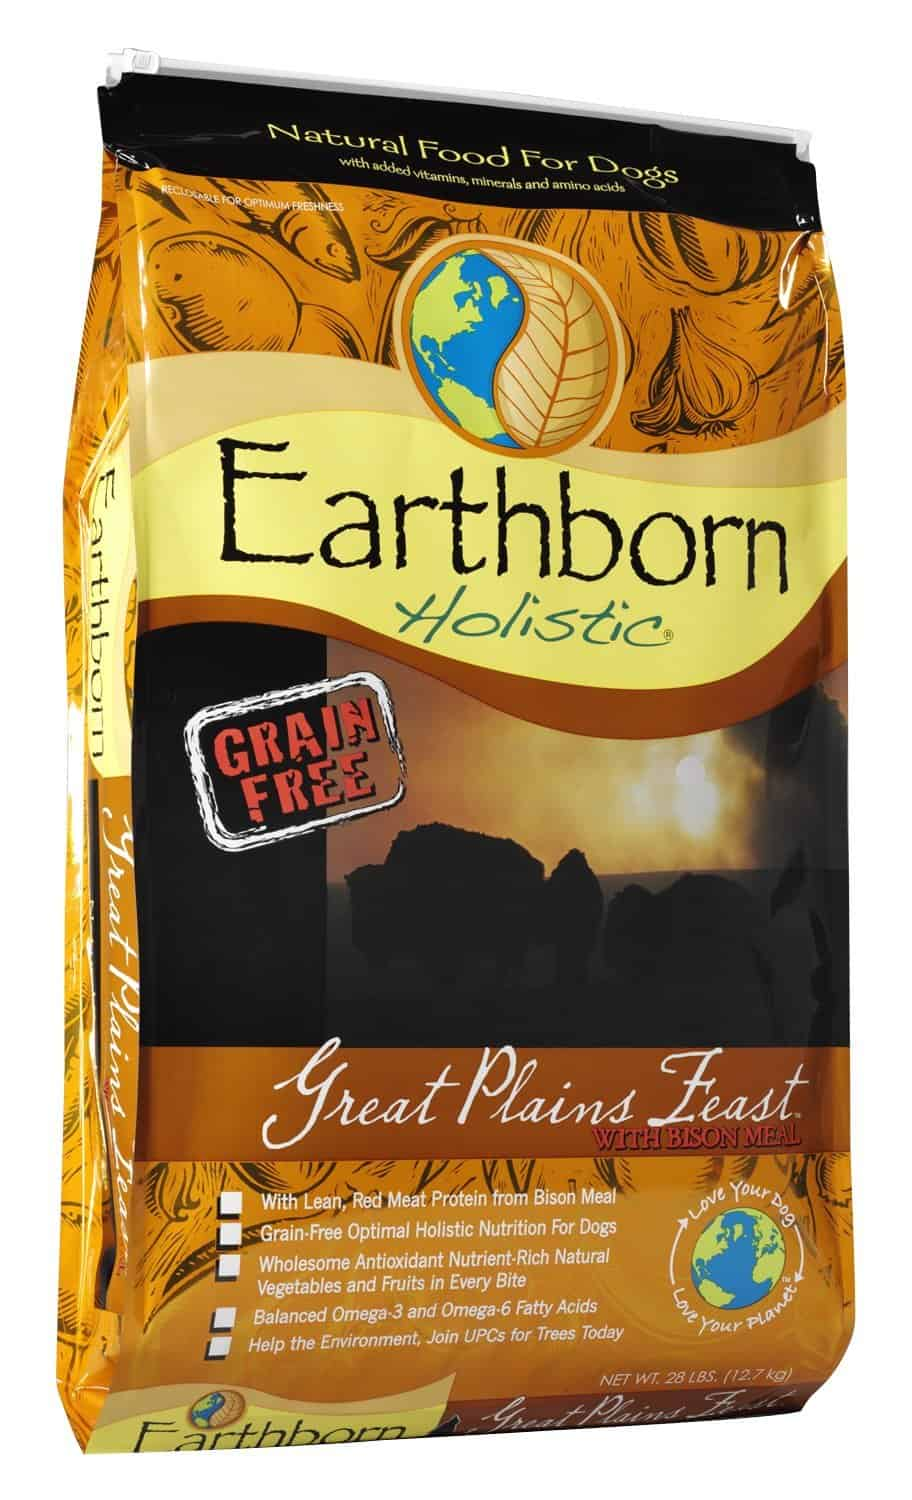 Earthborn Holistic Great Plains Feast Grain Free Dry Dog Food - Top 5 Best Dog Food For English Bulldogs You Never Knew